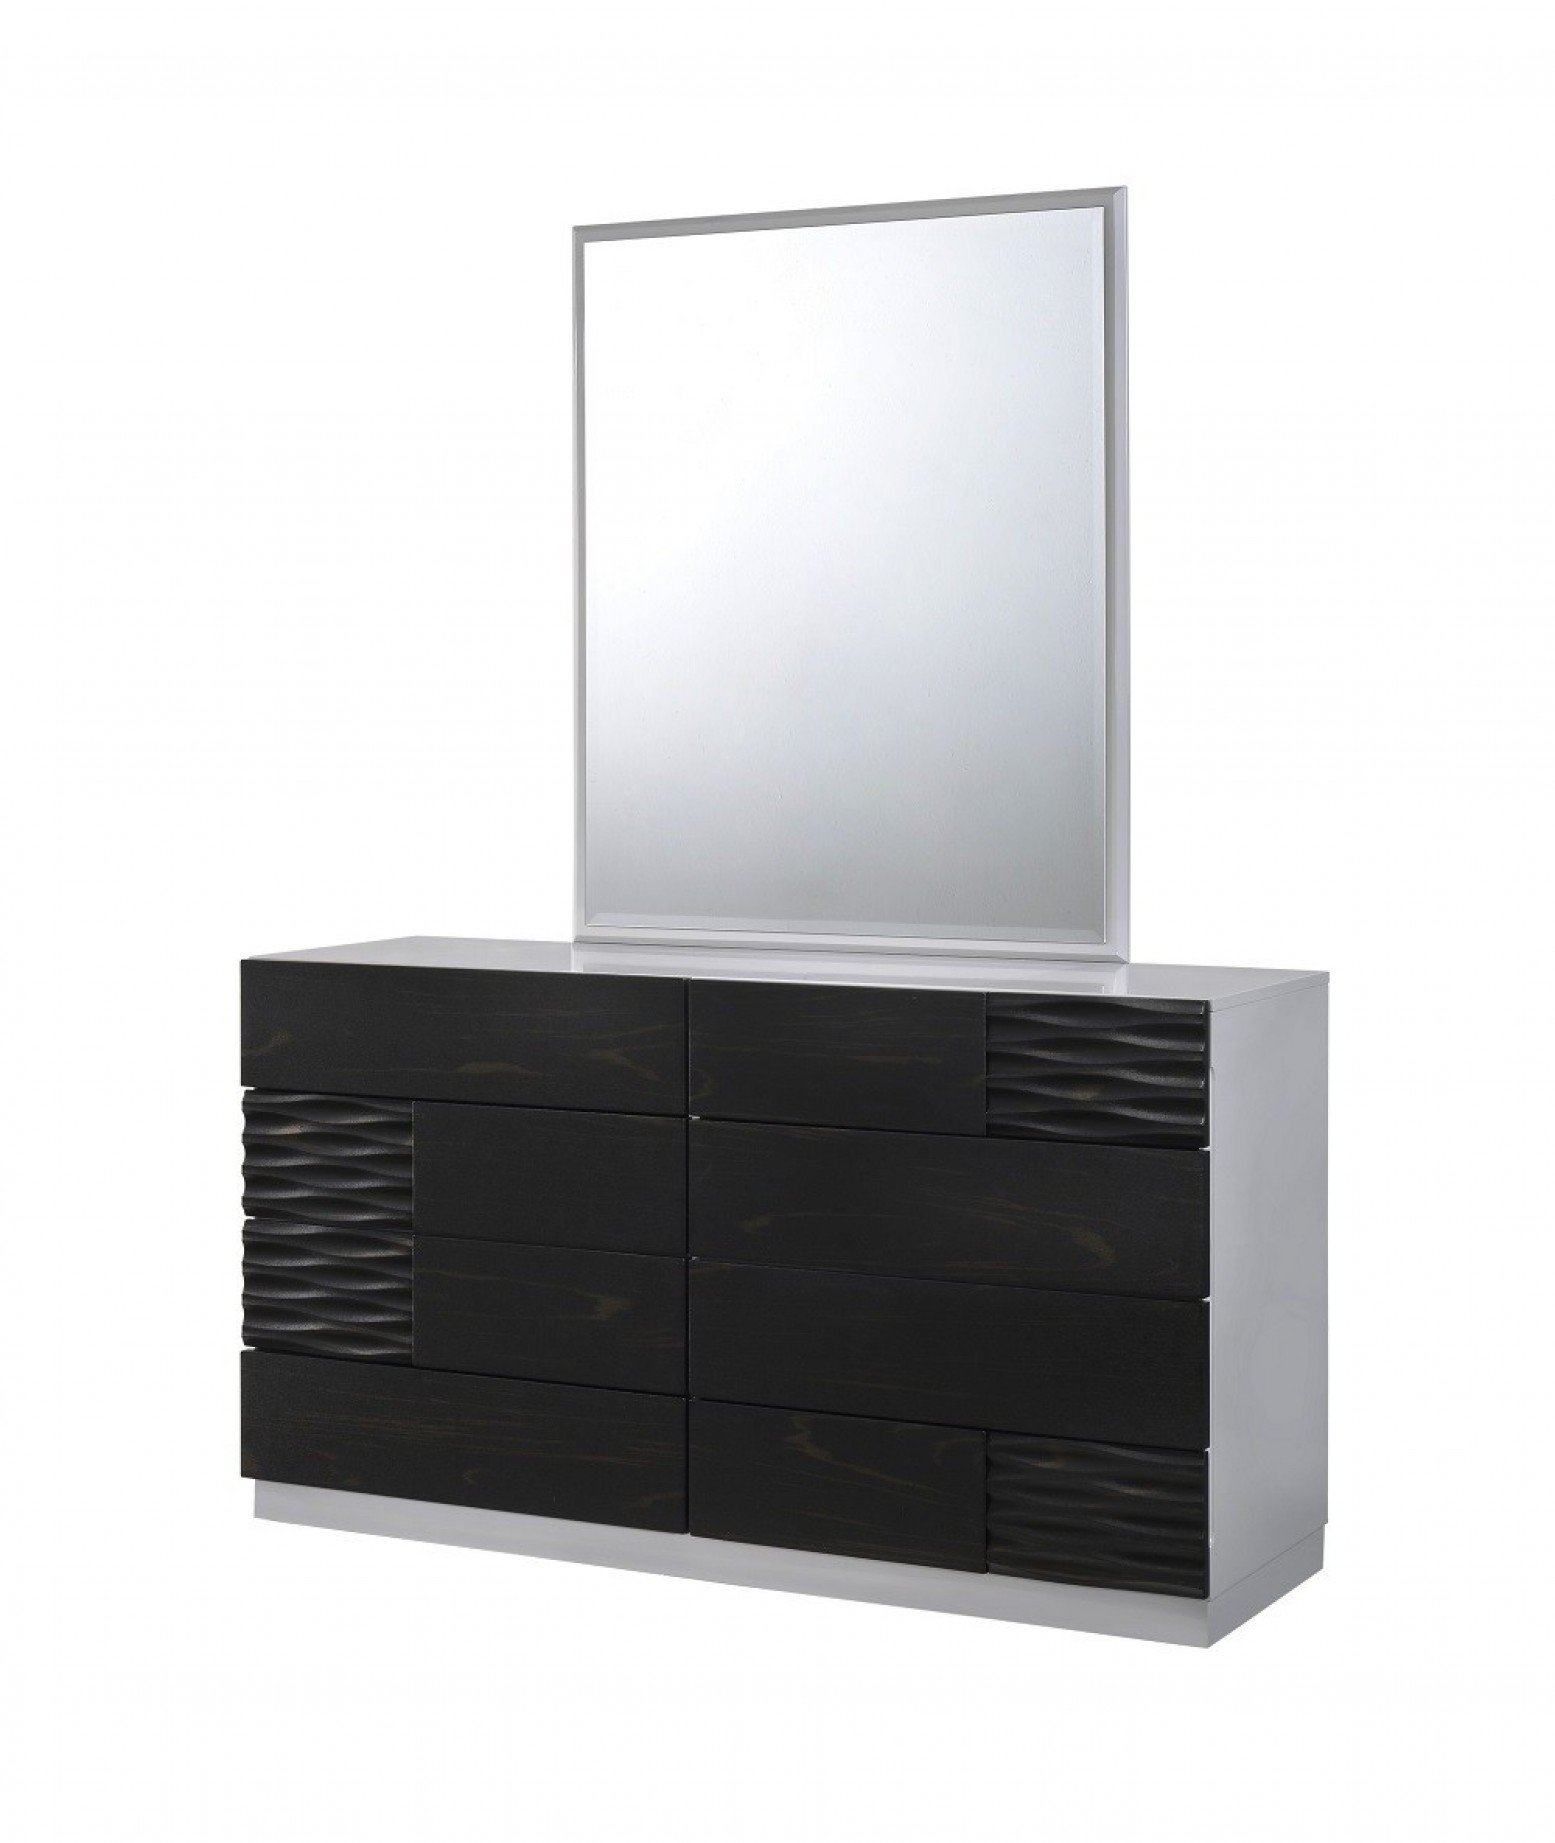 Tribeca Premium Glossy Dresser with Mirror